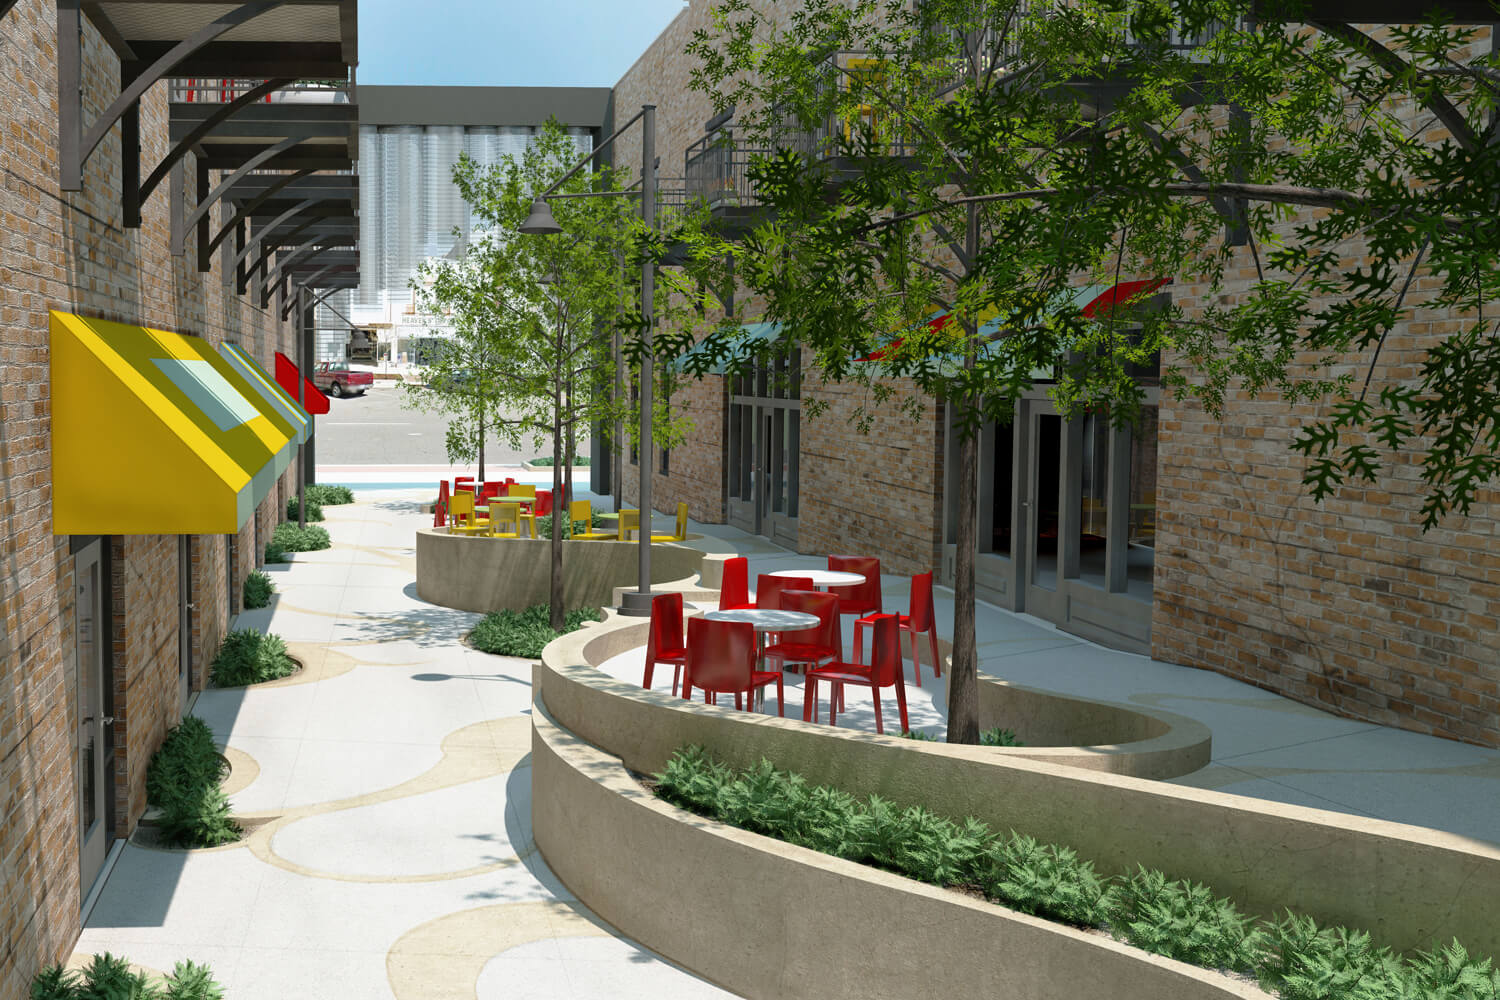 Dexter Alley Park Designed by Foshee Architecture - Exterior View from Back Steps